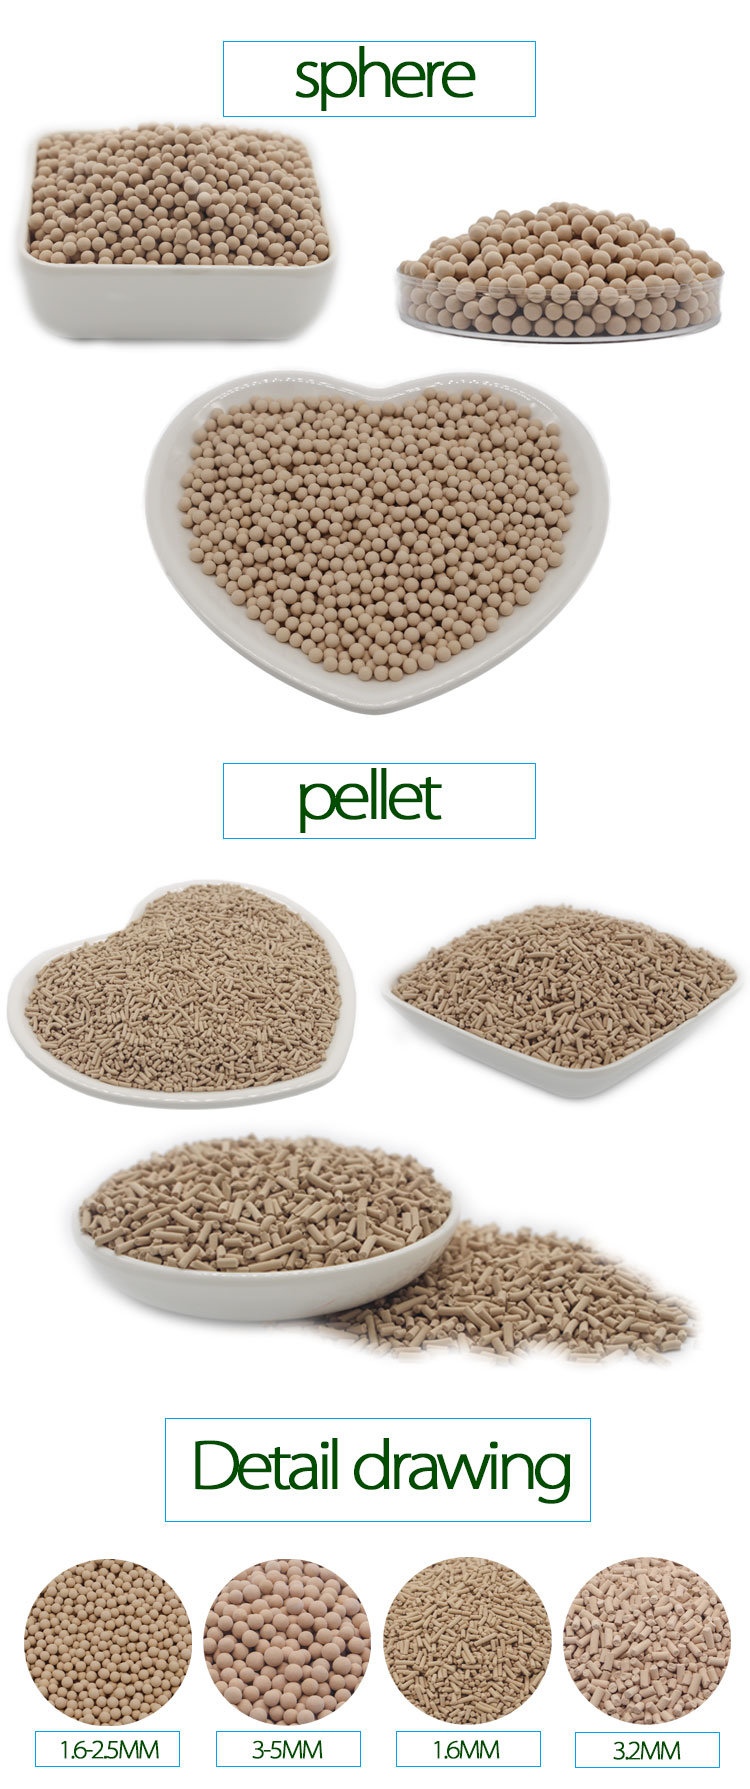 Xintao Molecular Sieve 5A for H2 Production O2 Generator Desiccant